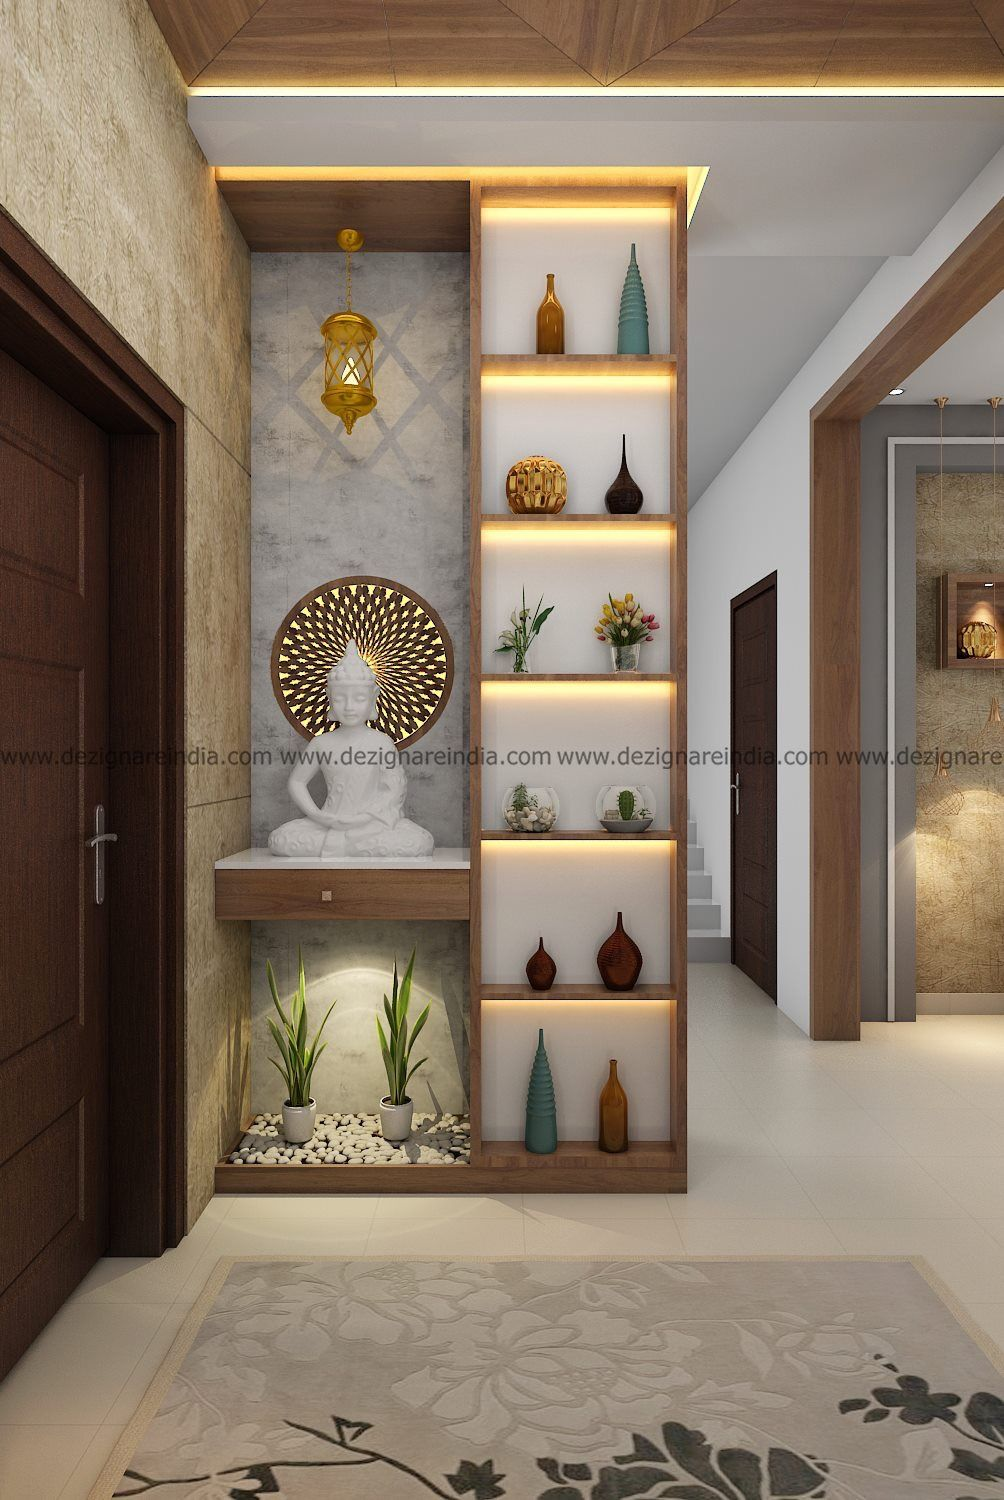 Wall divider in 2019 | Room partition designs, Foyer design ...